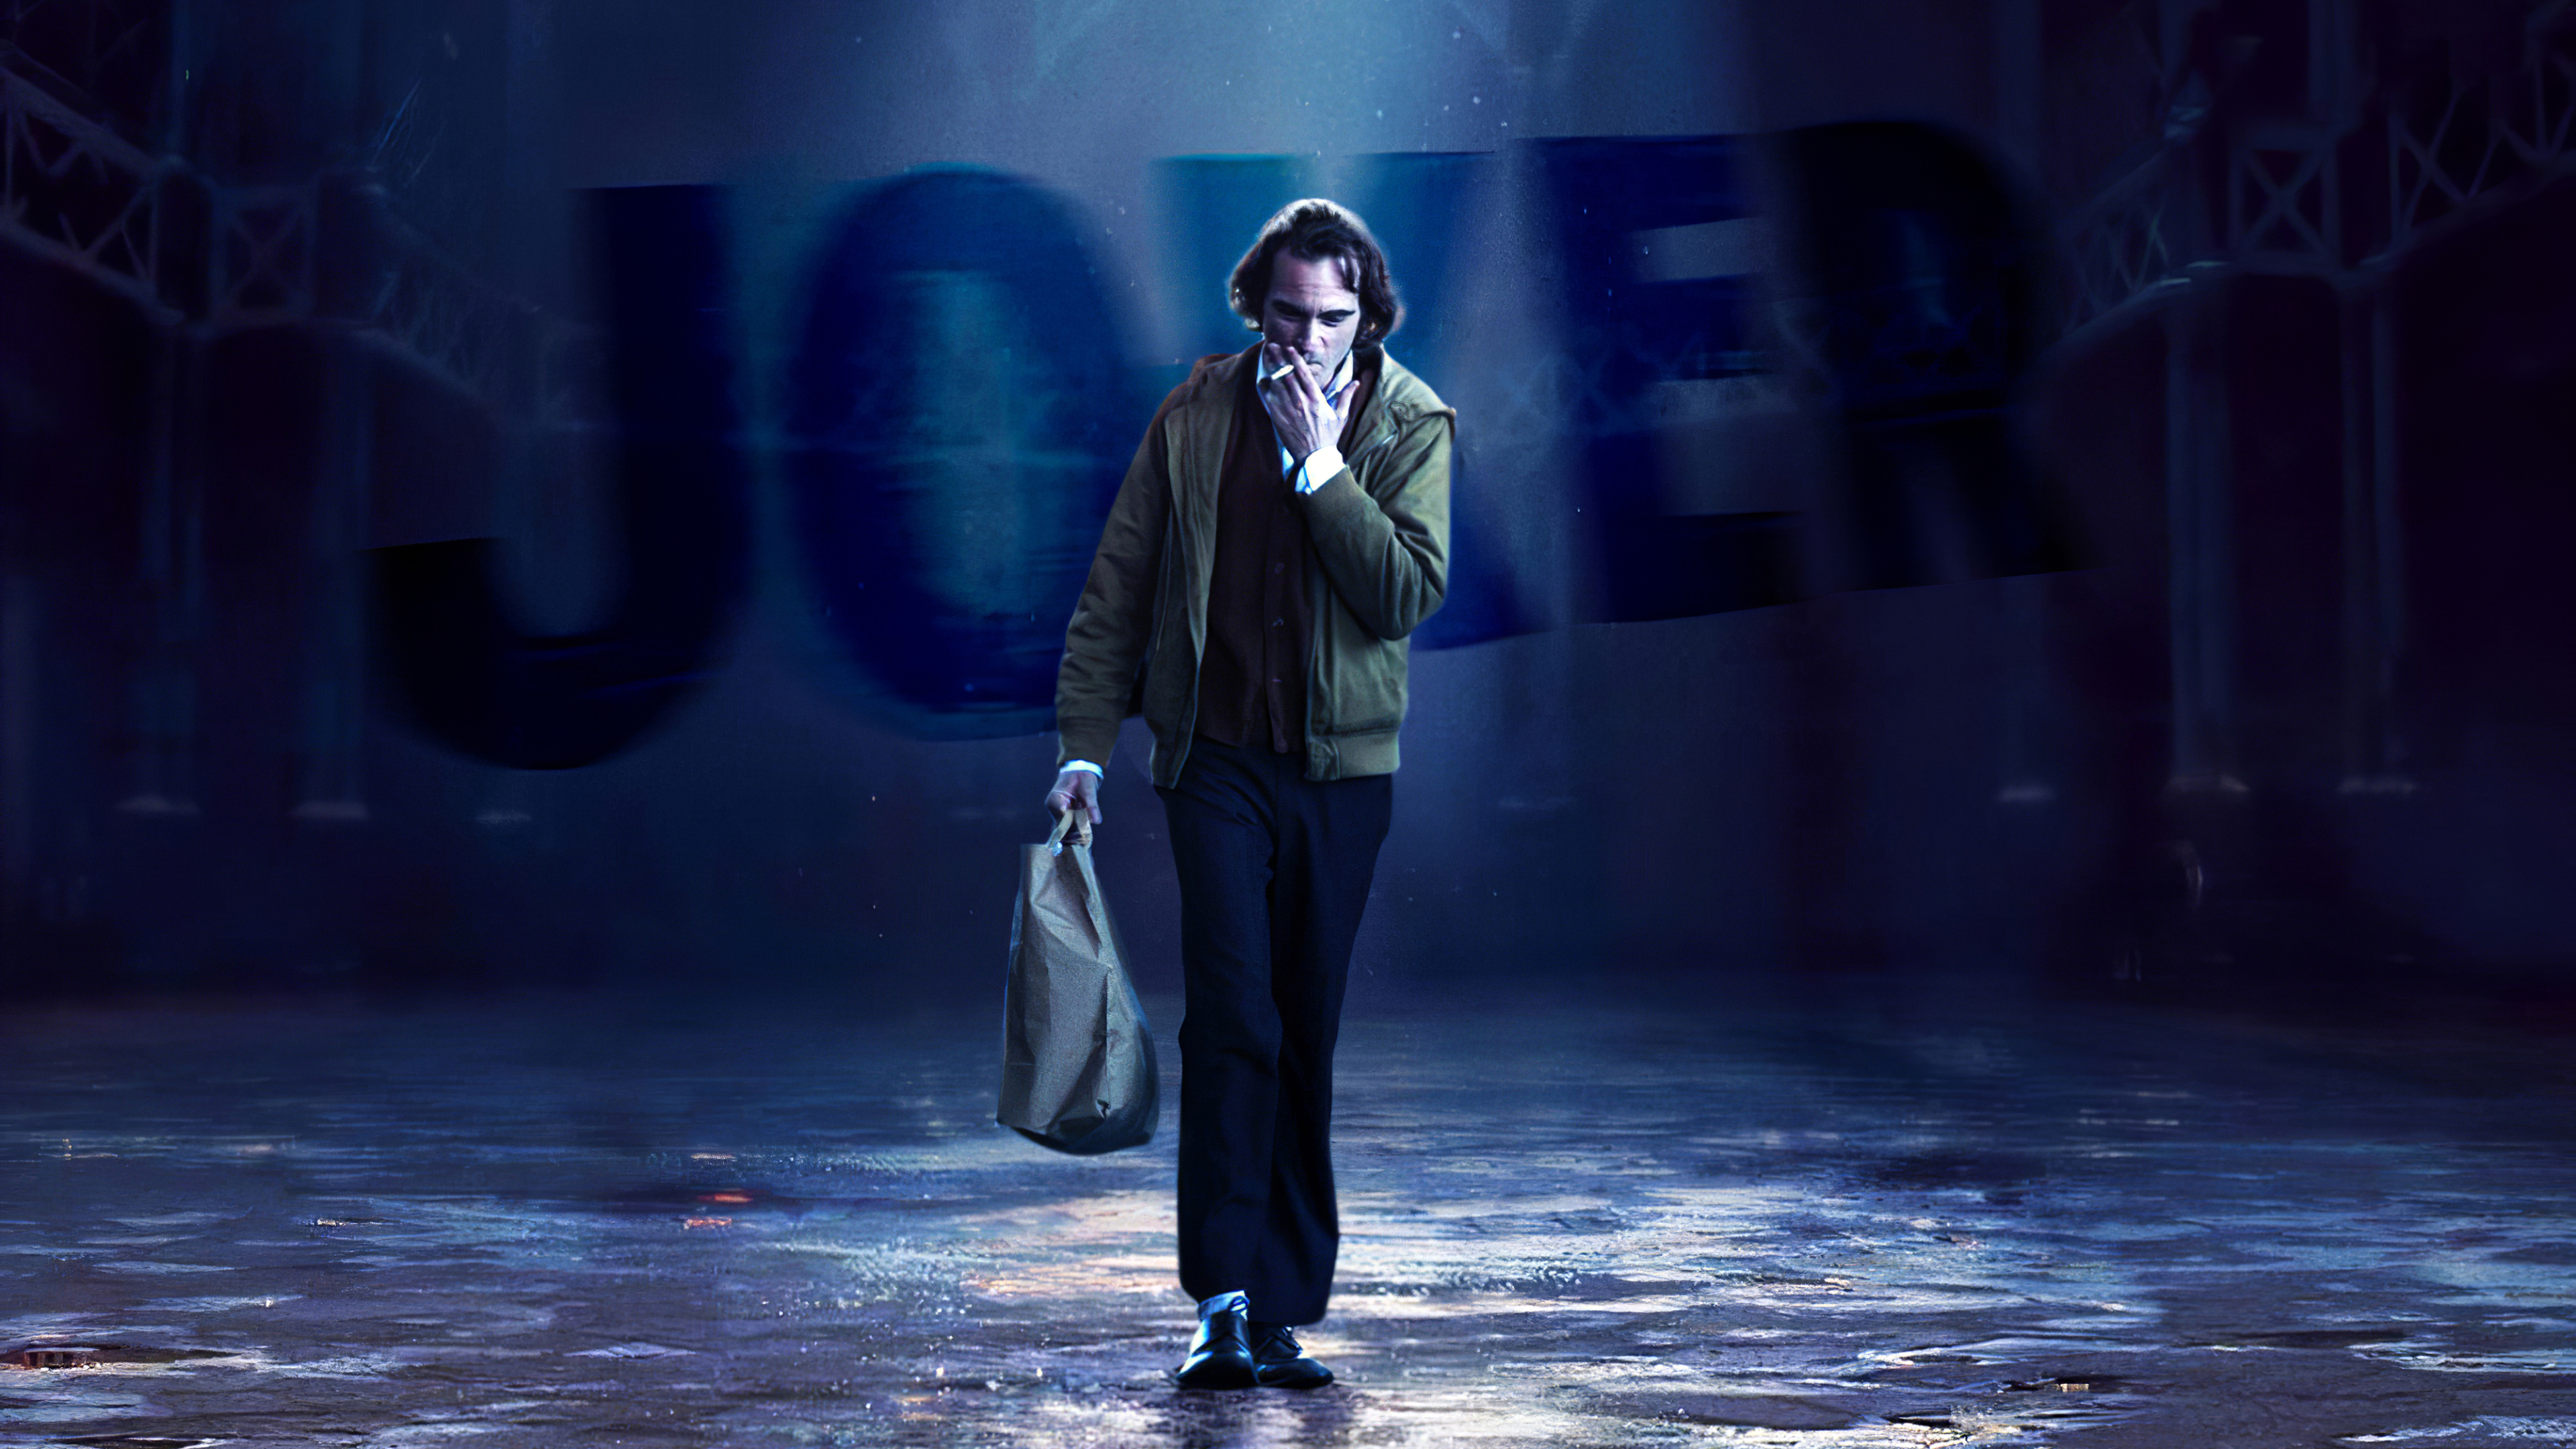 Joker 4k Wallpapers Hd Wallpapers